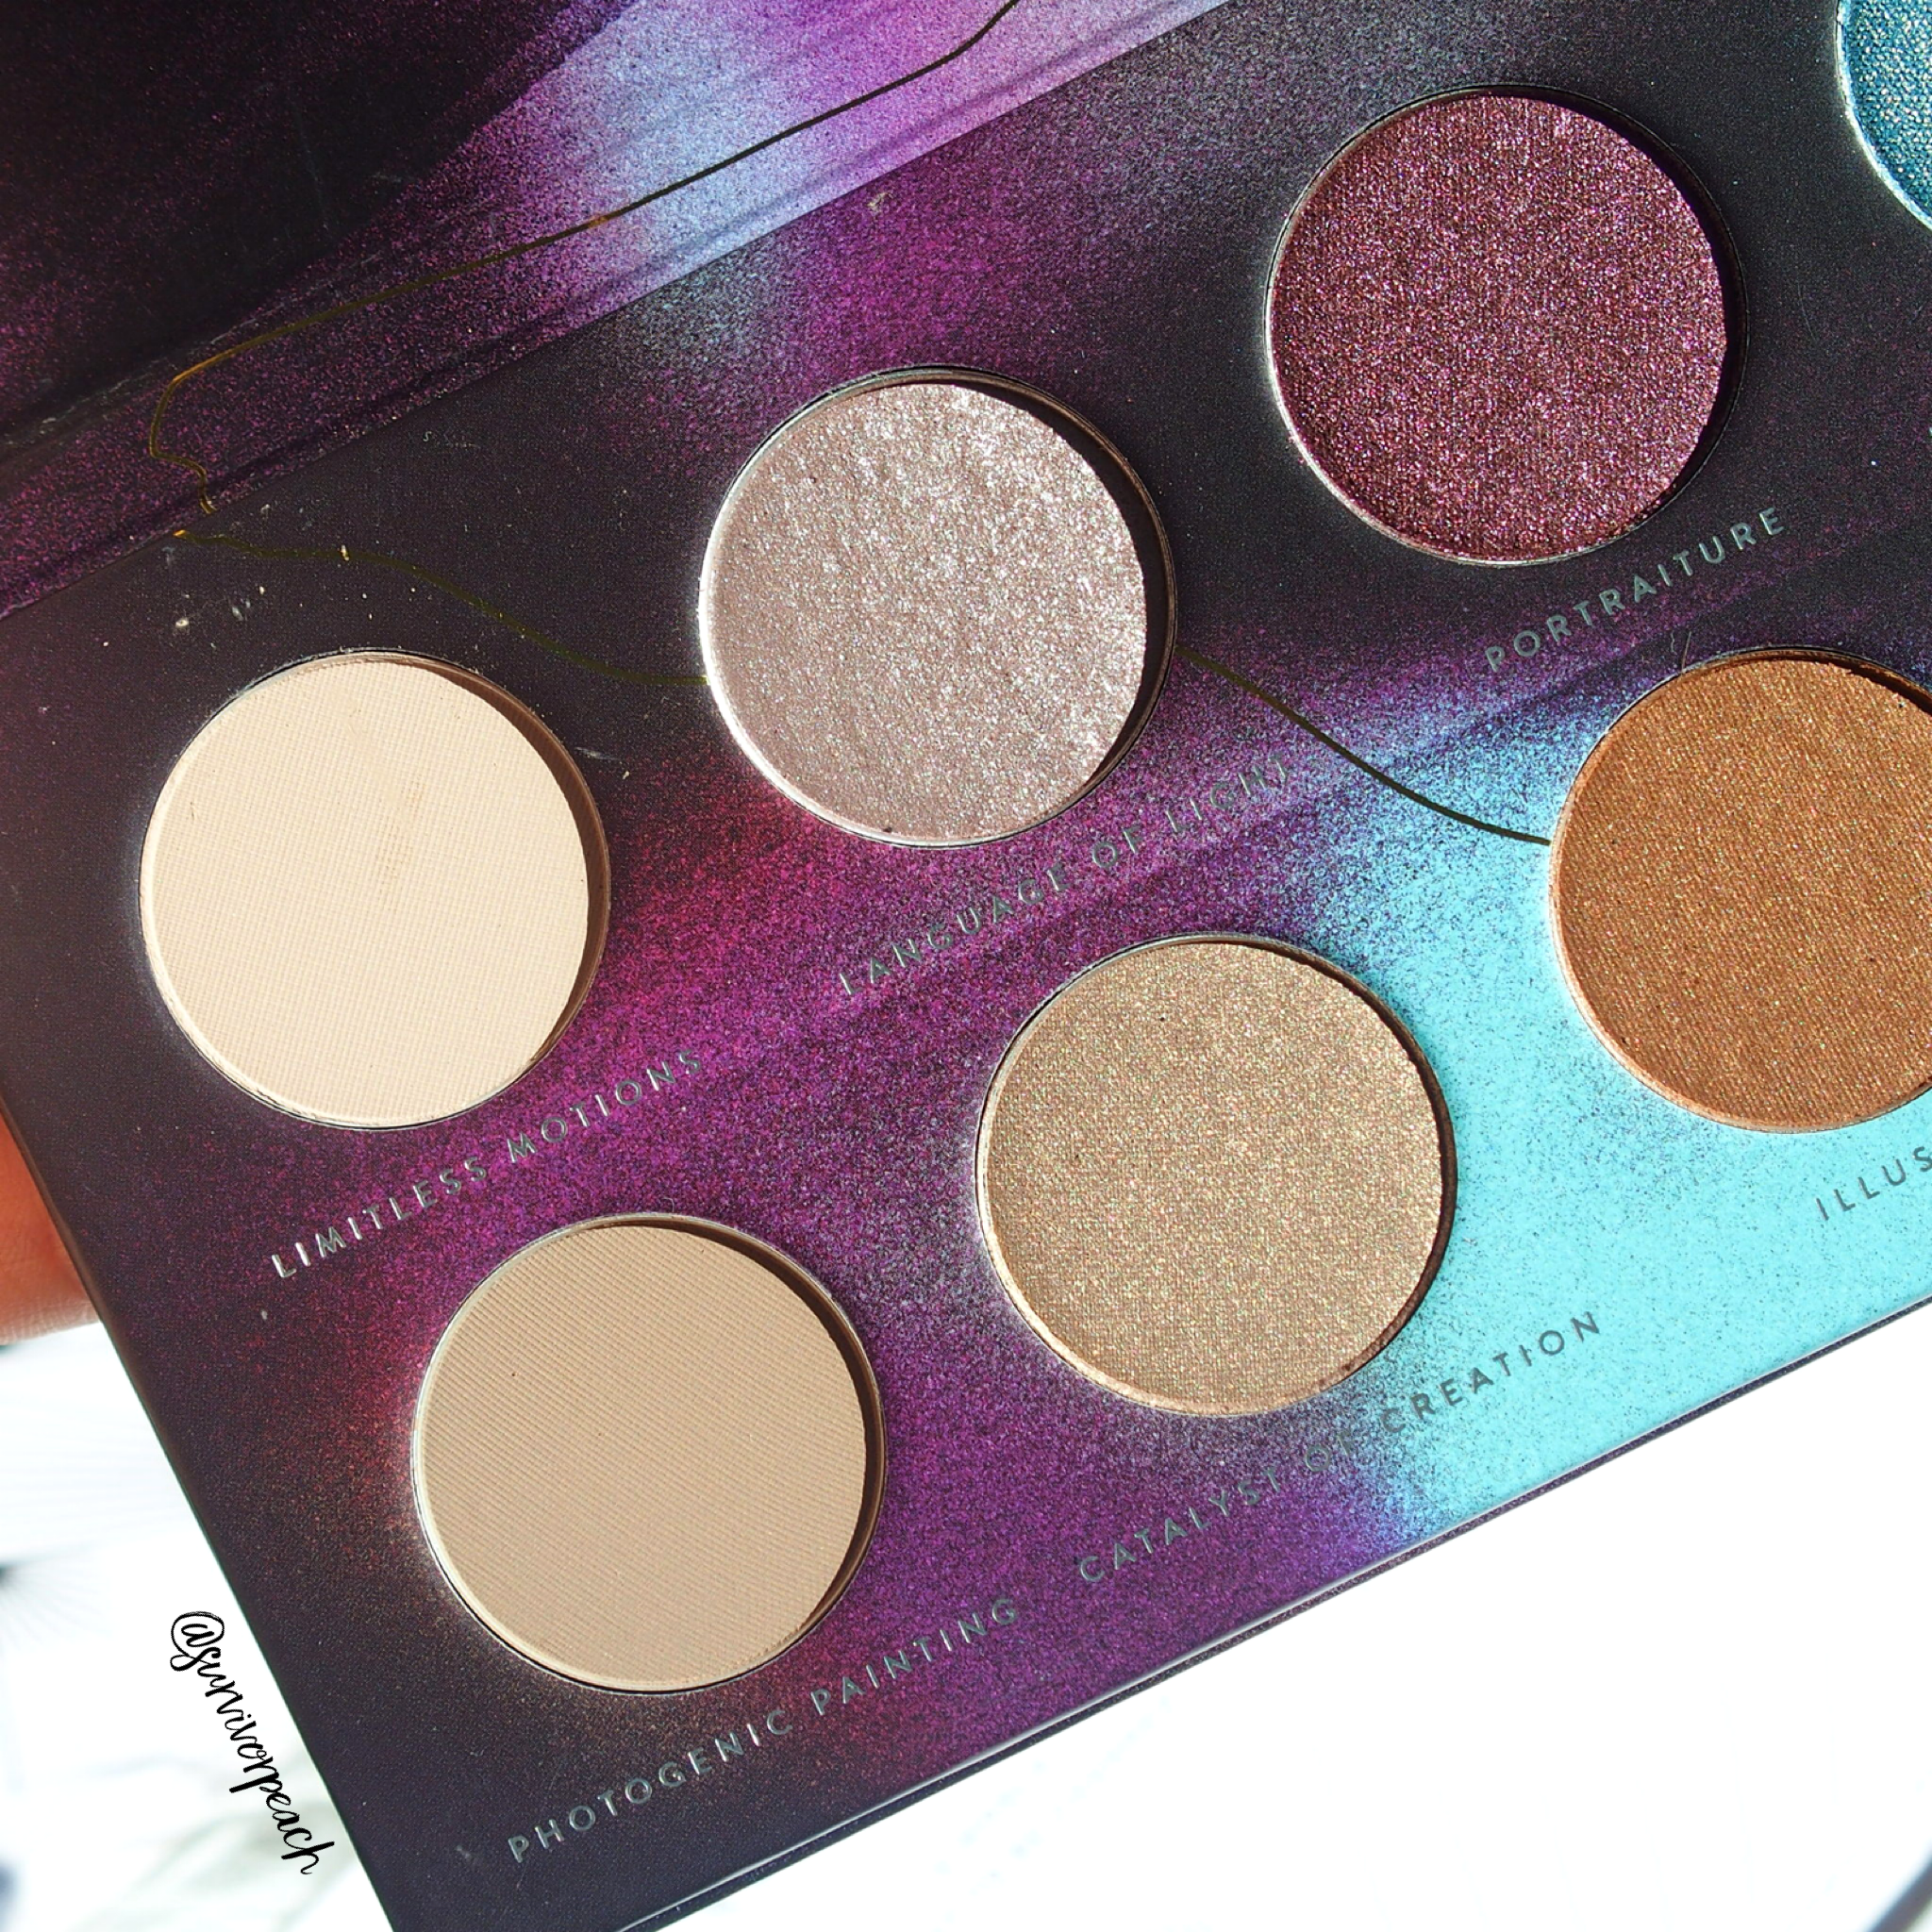 Zoeva Eclectric Eyes Eyeshadow palette